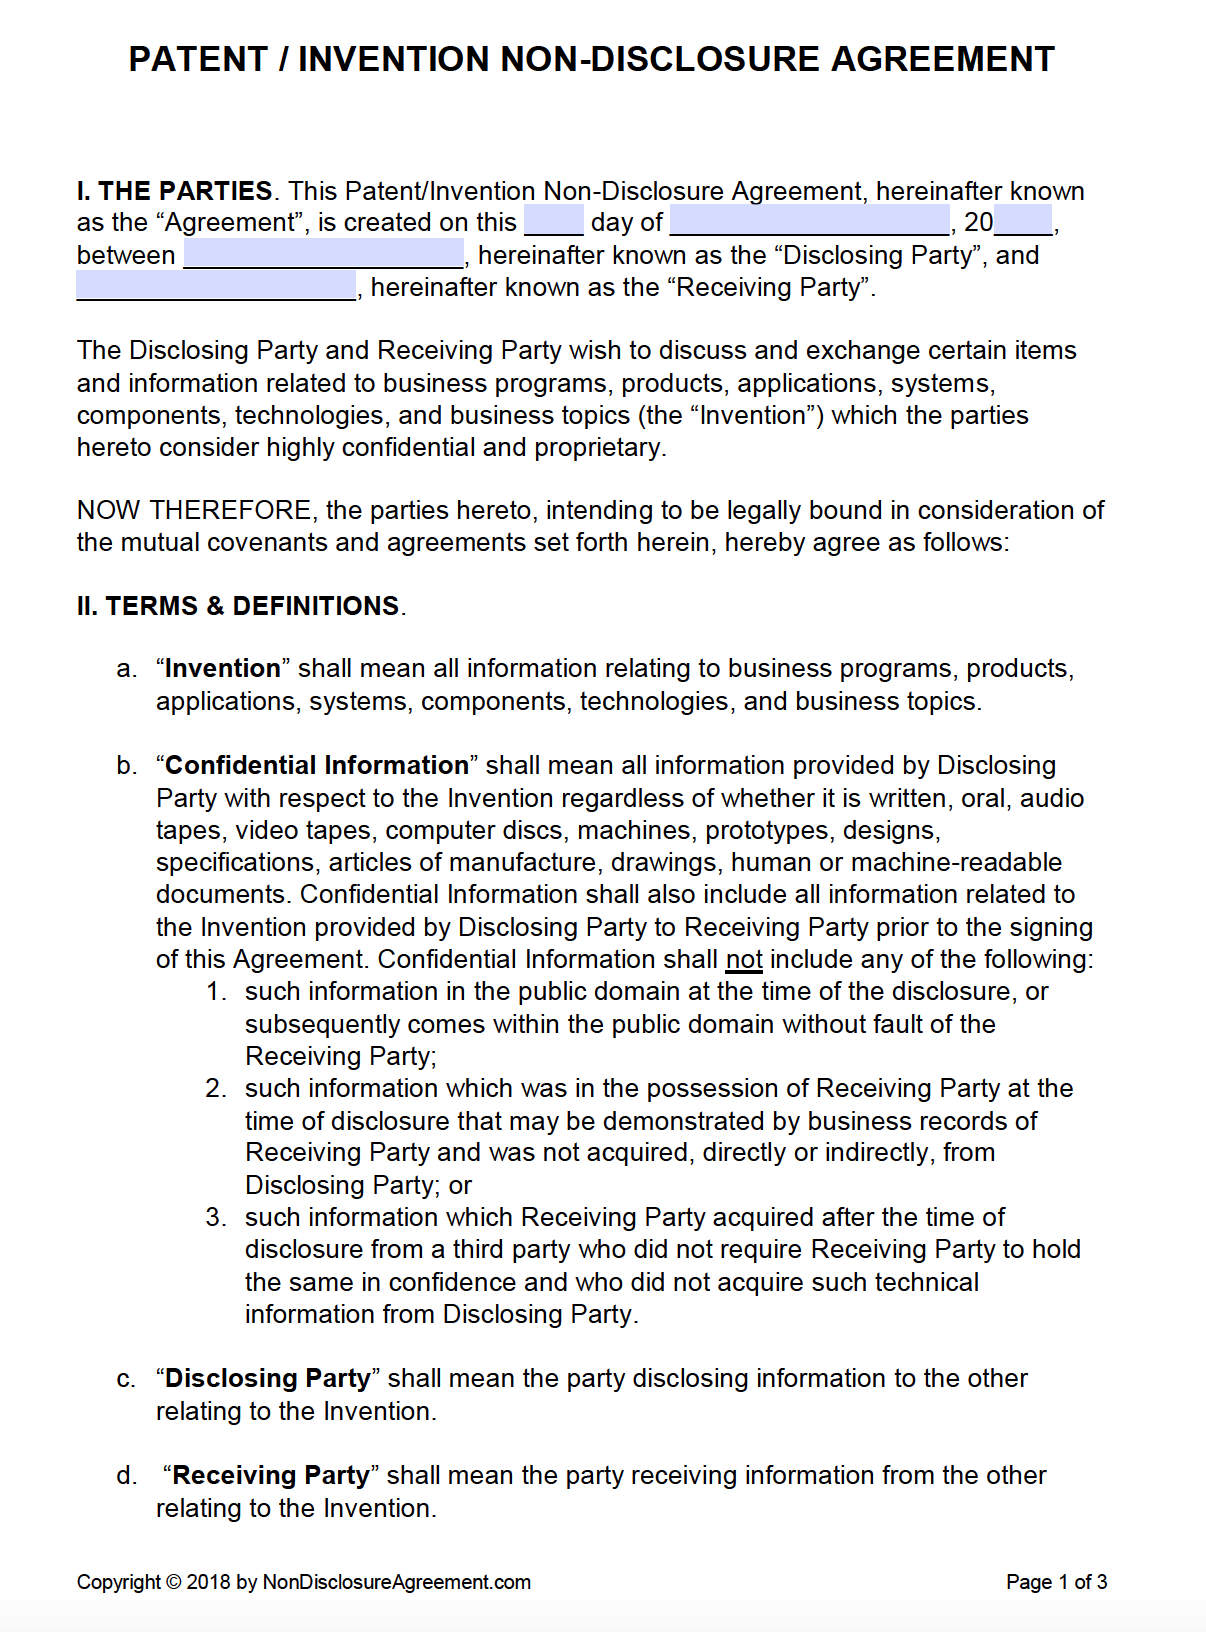 Free Patent Invention Nondisclosure Agreement Nda  Pdf  Word With Mutual Confidentiality Agreement Template